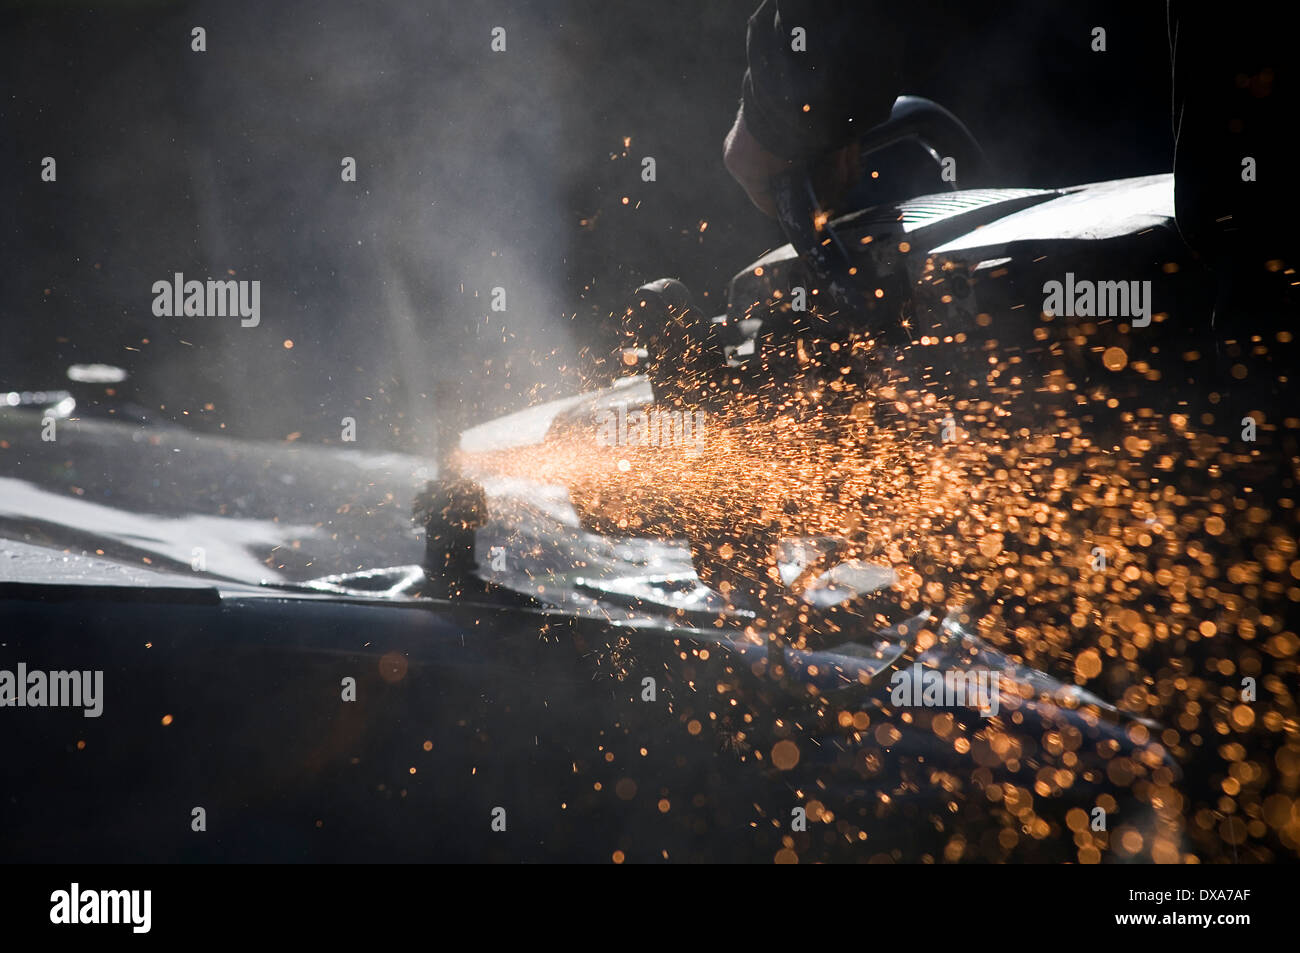 disk cutter cutting wheel angle grinder grinding cut steel metal sparks spark flying spray spraying of stihl saw saws grinders - Stock Image